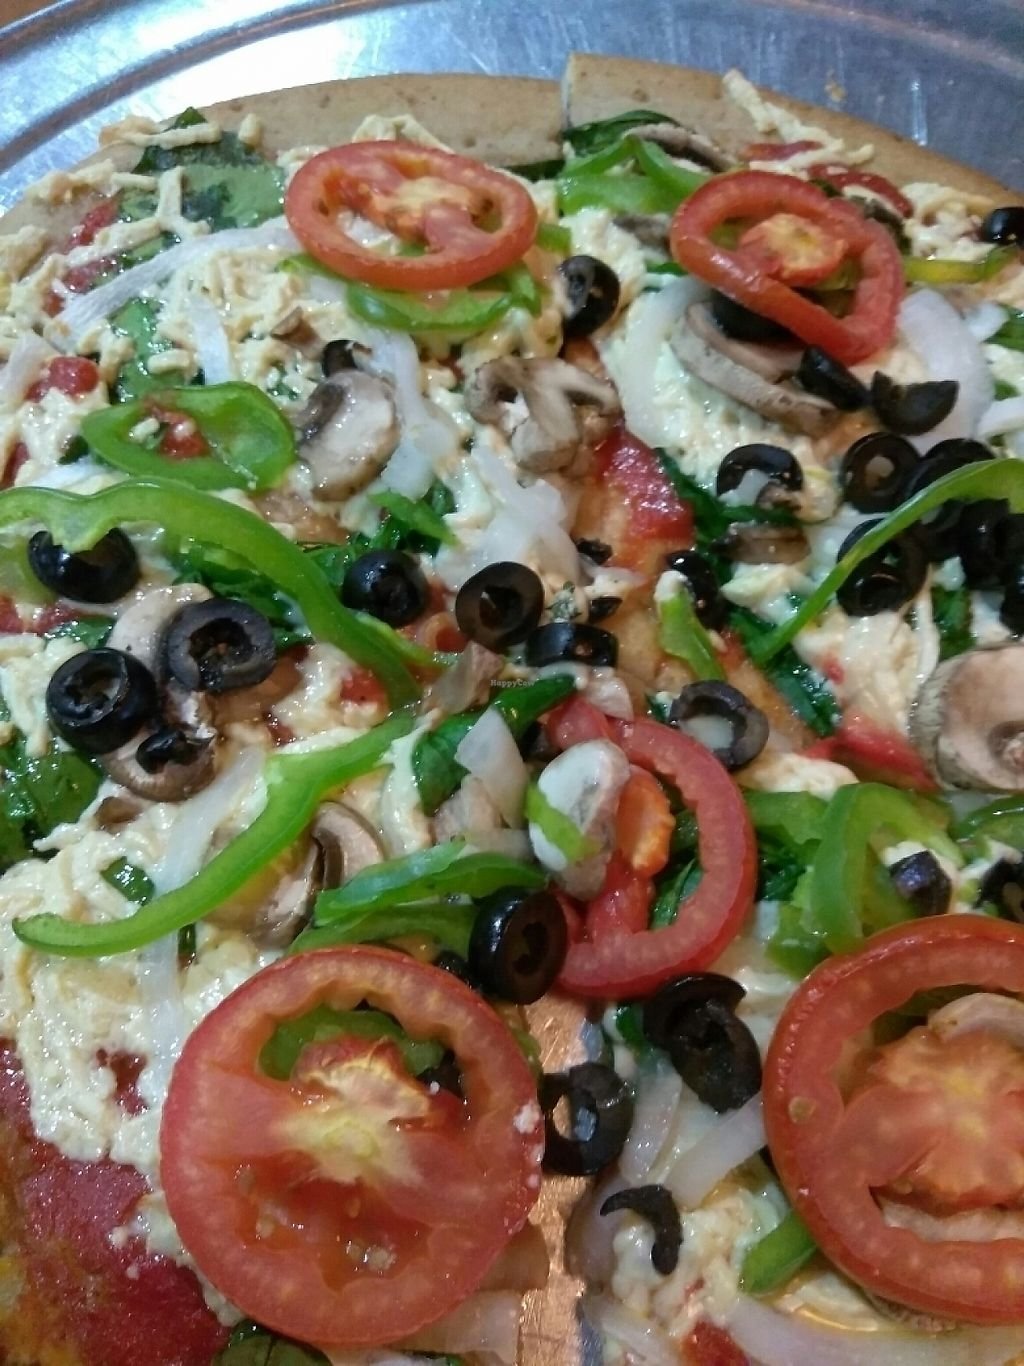 """Photo of Mellow Mushroom  by <a href=""""/members/profile/Tonydetra"""">Tonydetra</a> <br/>vegan pizza happiness <br/> May 14, 2017  - <a href='/contact/abuse/image/23863/258830'>Report</a>"""